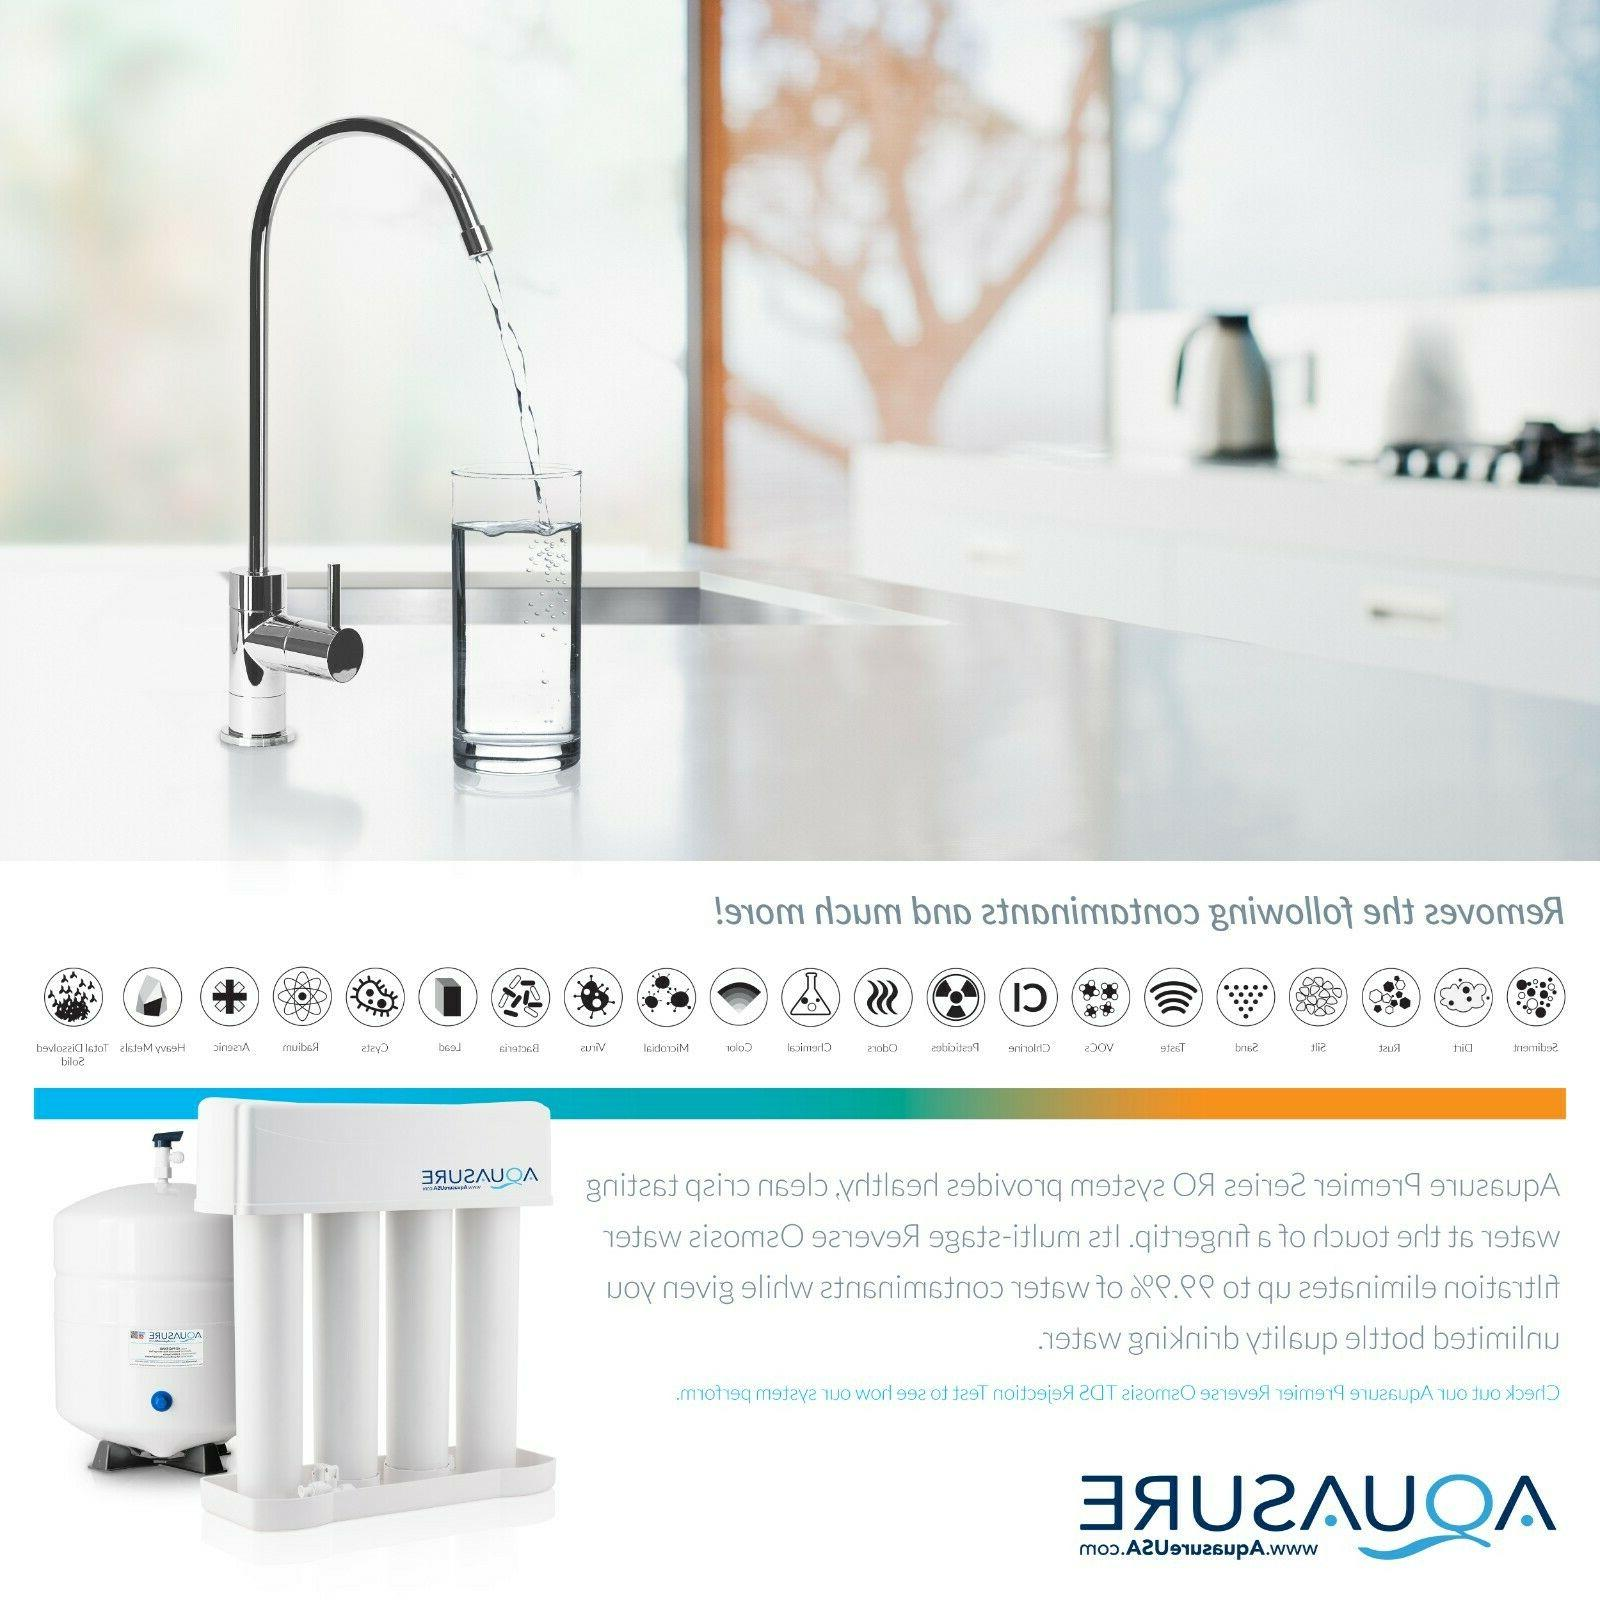 Aquasure Softener, Whole House Filtration, system,